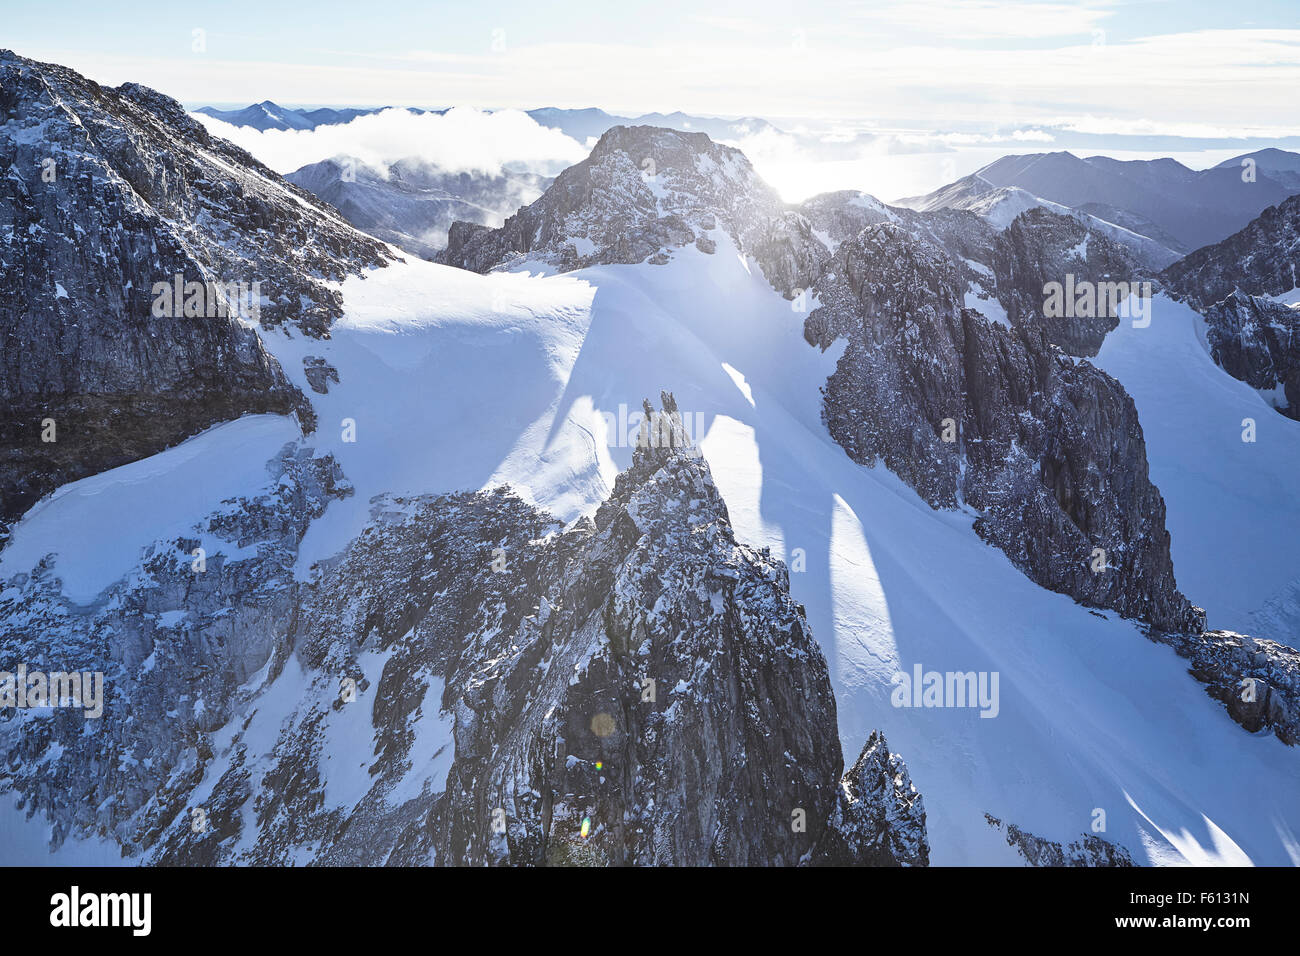 Aerial view, Andes with snow, Tierra del Fuego National Park, Argentina - Stock Image